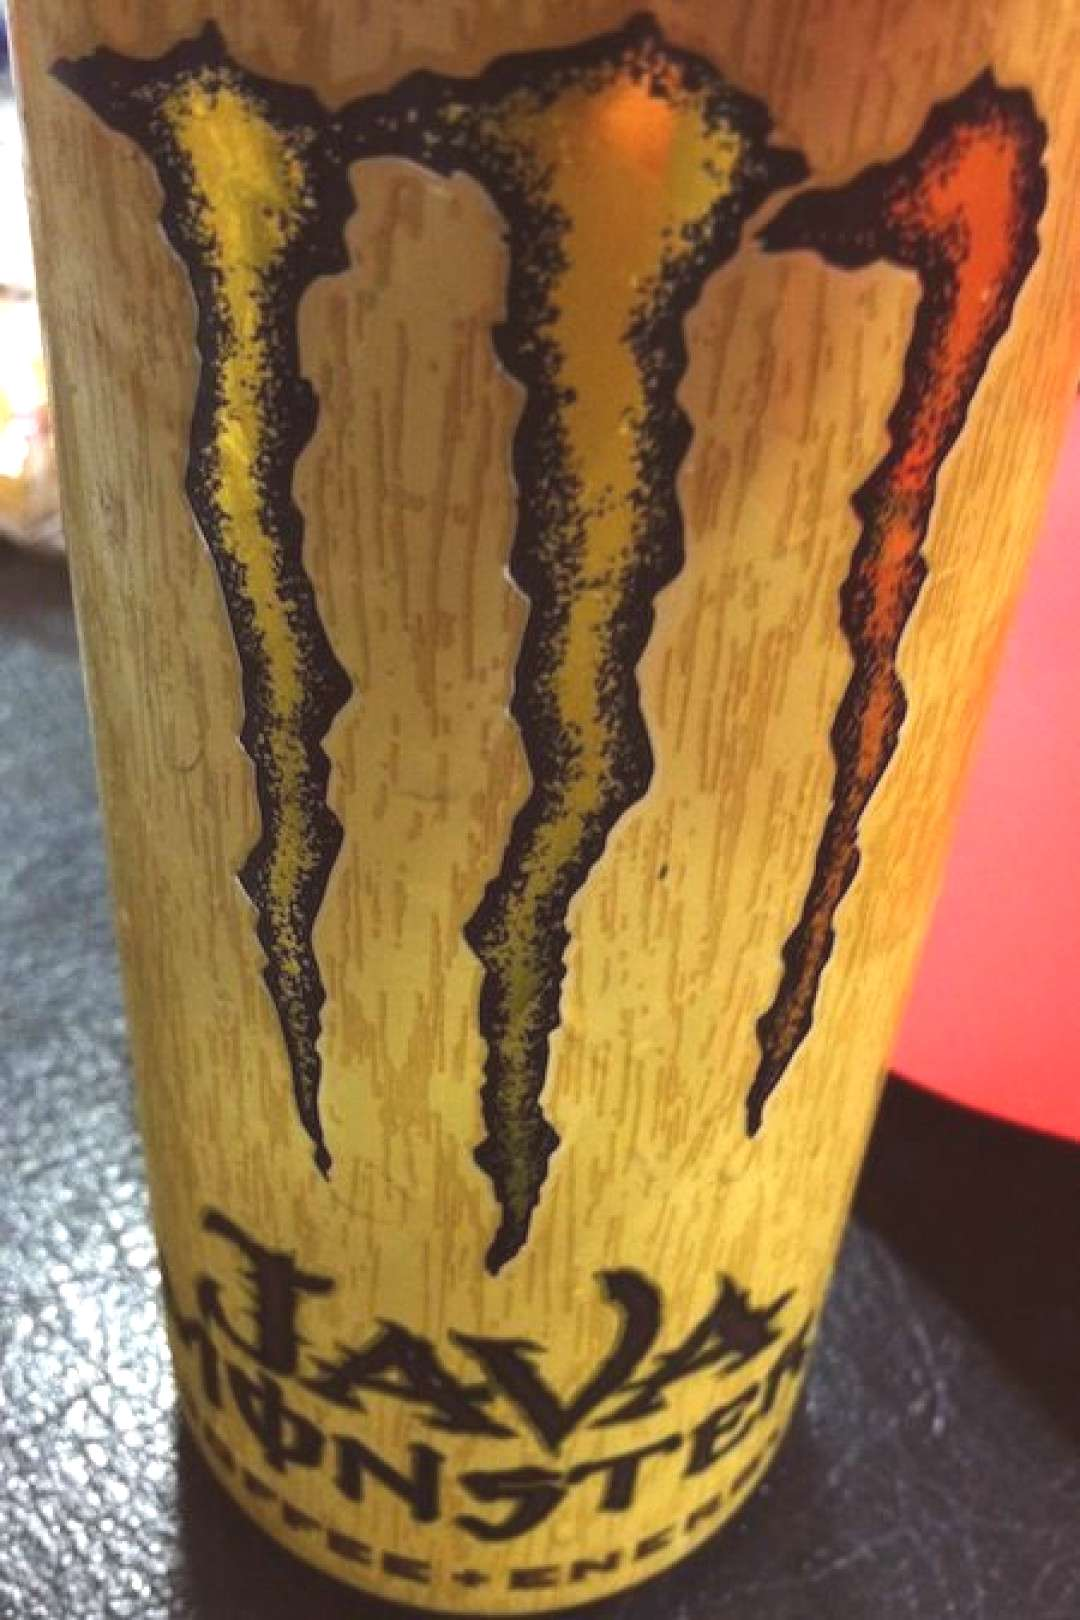 More Doctors Agree Energy Drinks Dangerous to Youth More Doctors Agree Energy Drinks Dangerous to